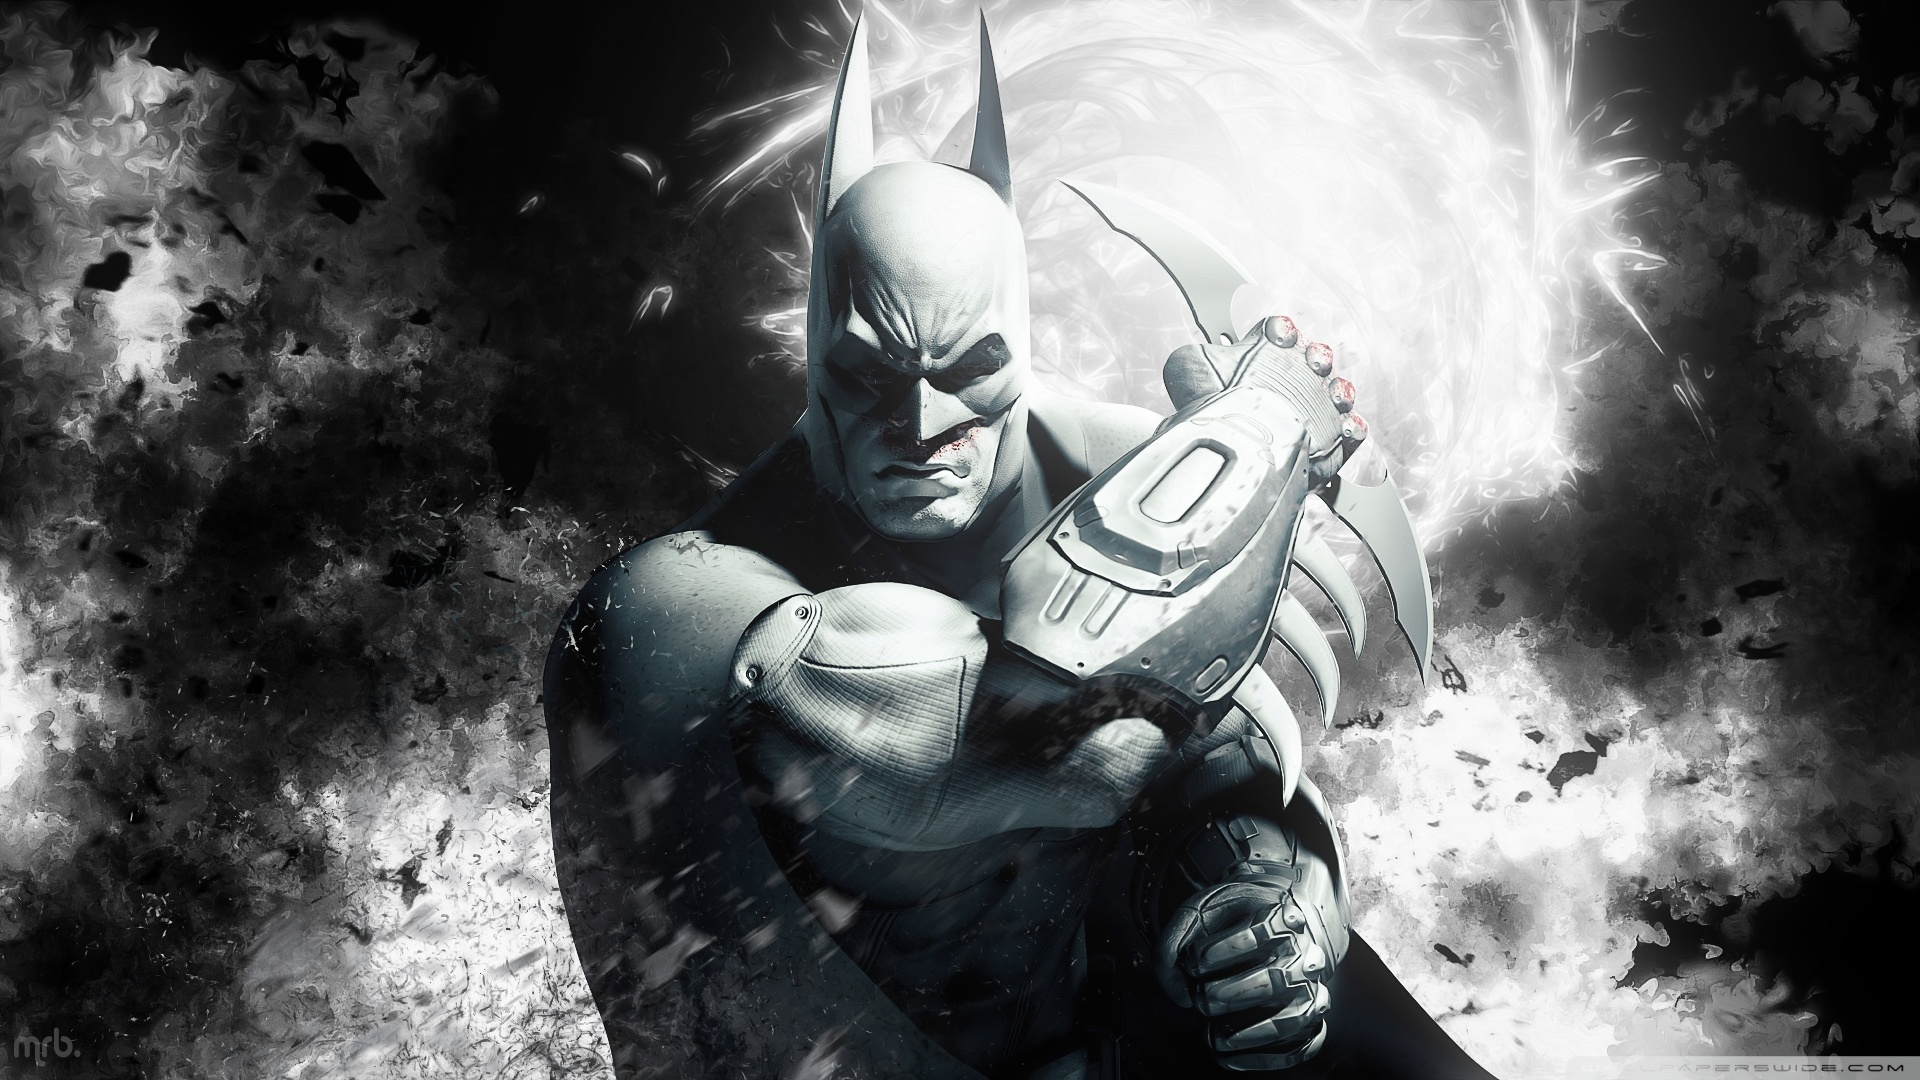 Batman Arkham City Wallpapers Batman Wallpaper Hd 4k 930064 Hd Wallpaper Backgrounds Download